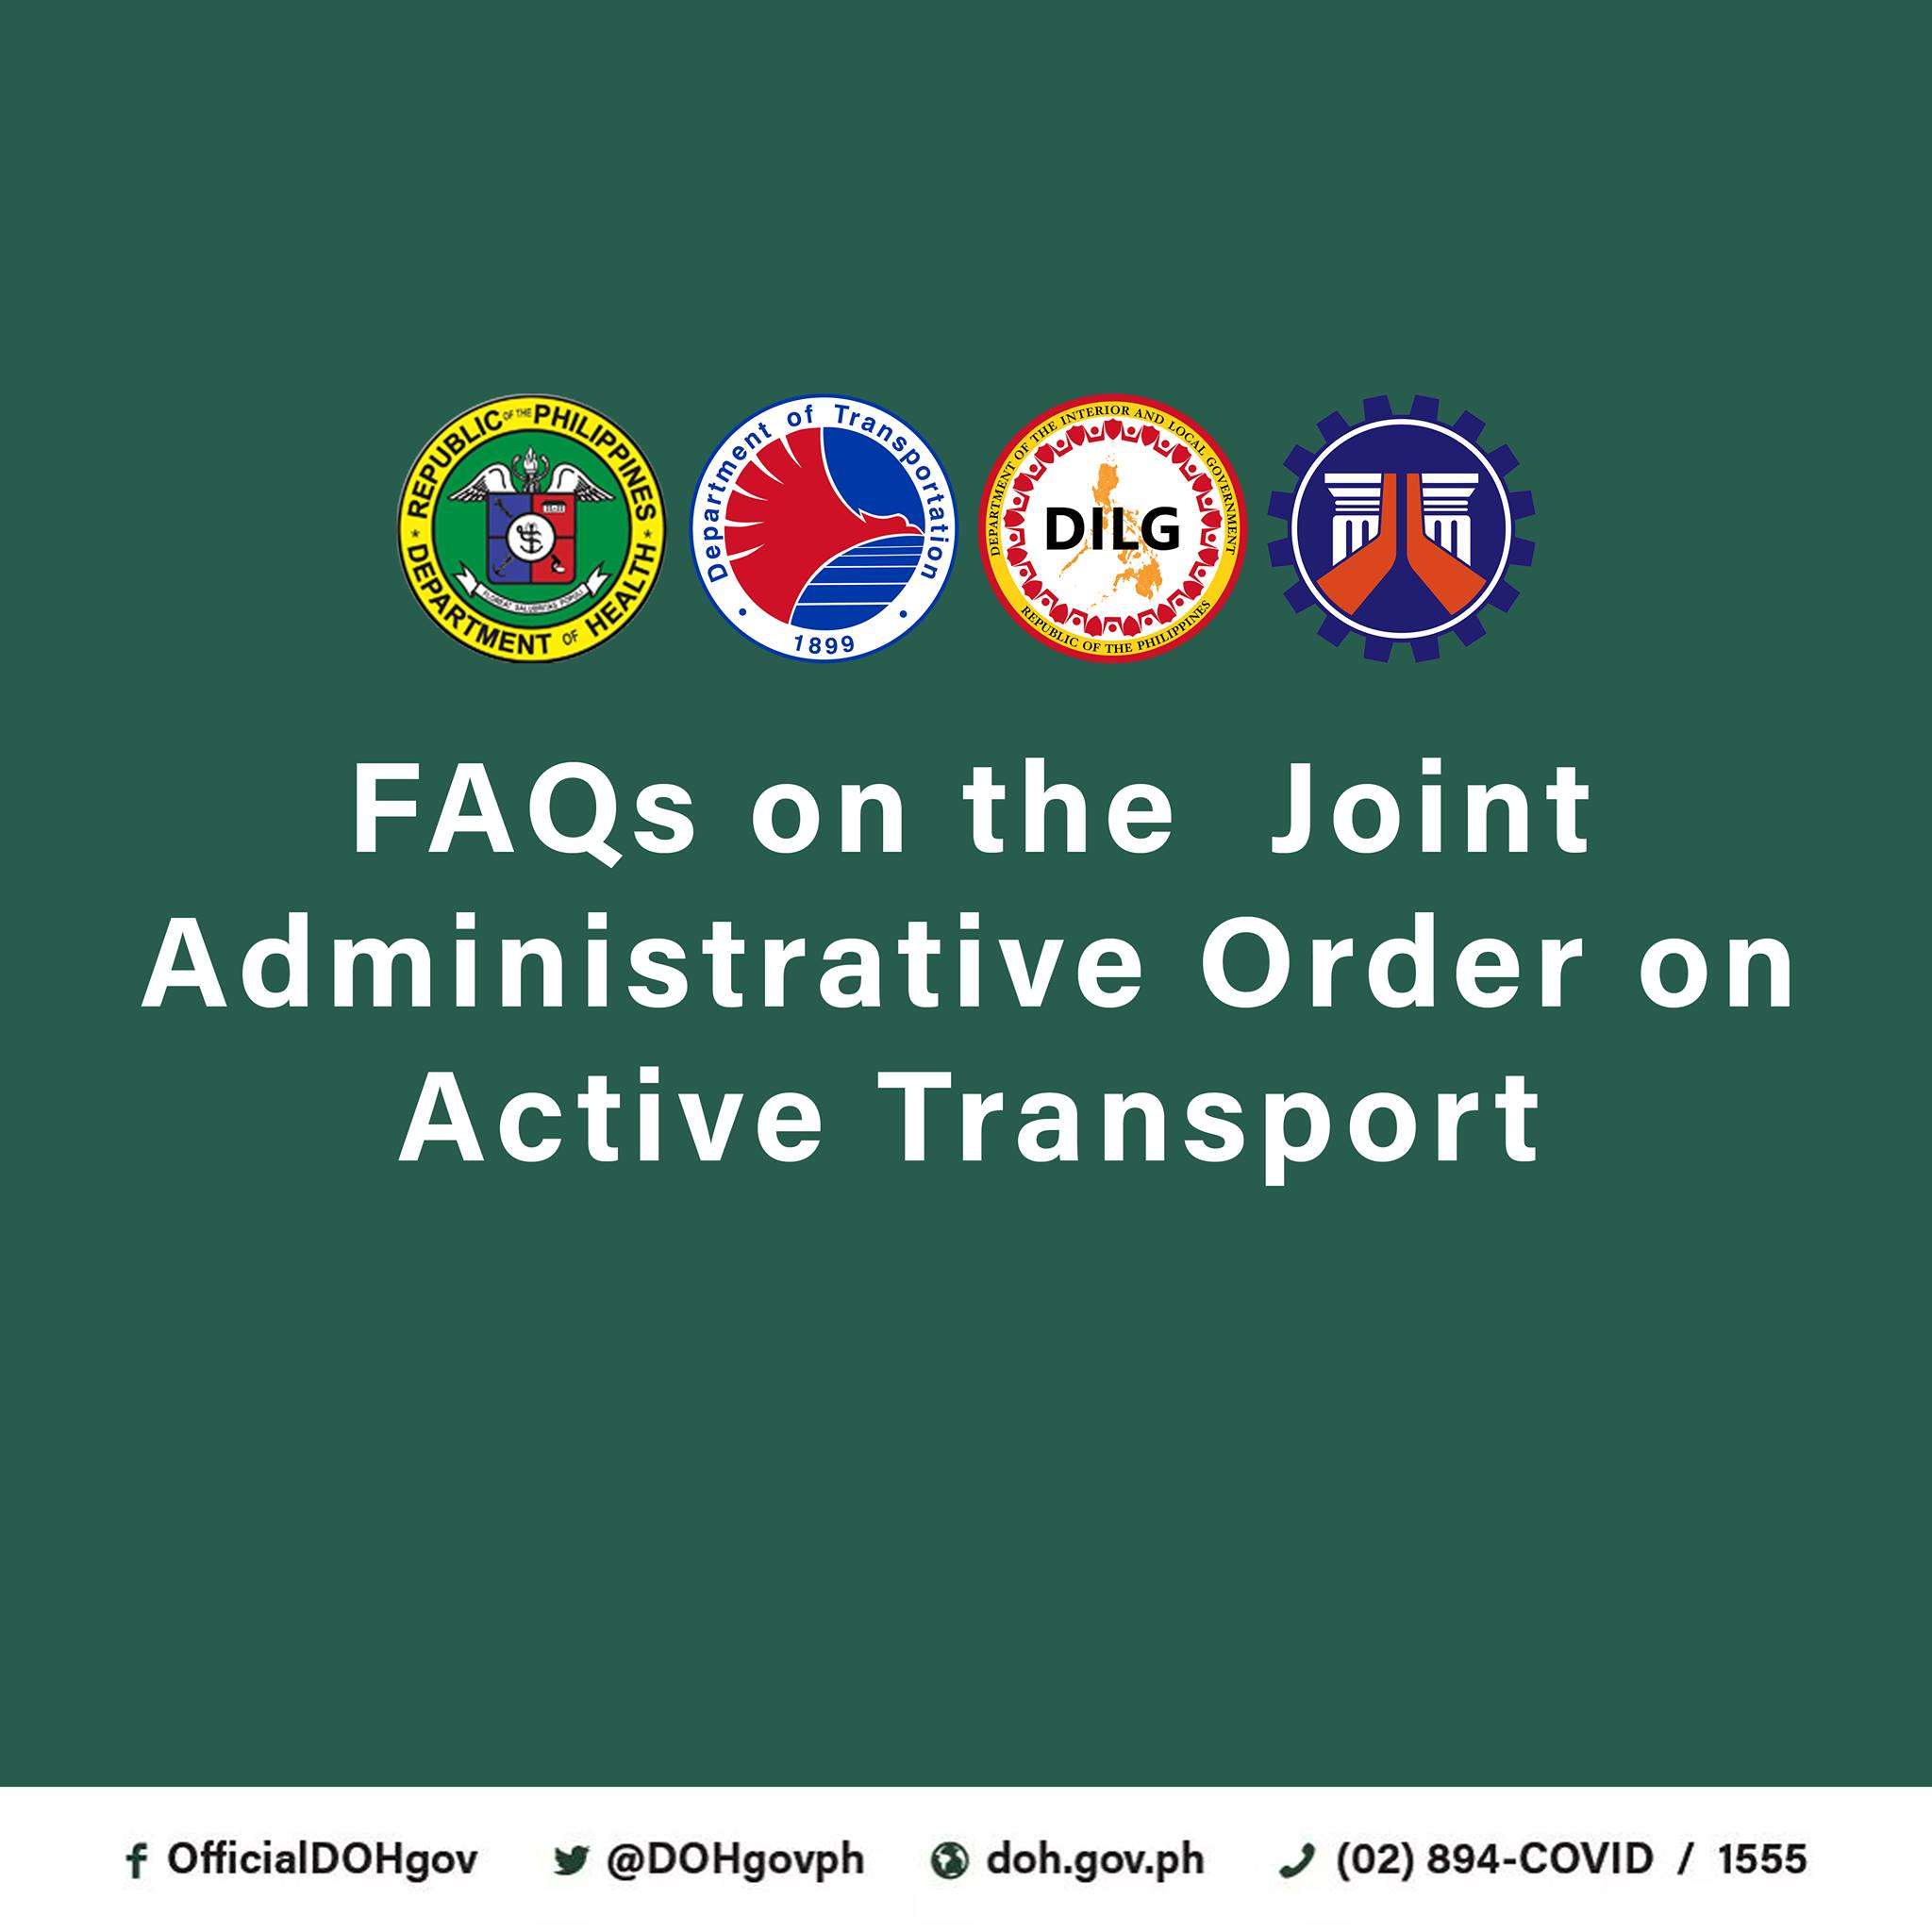 FAQ on the Joint Administrative Order on Active Transport